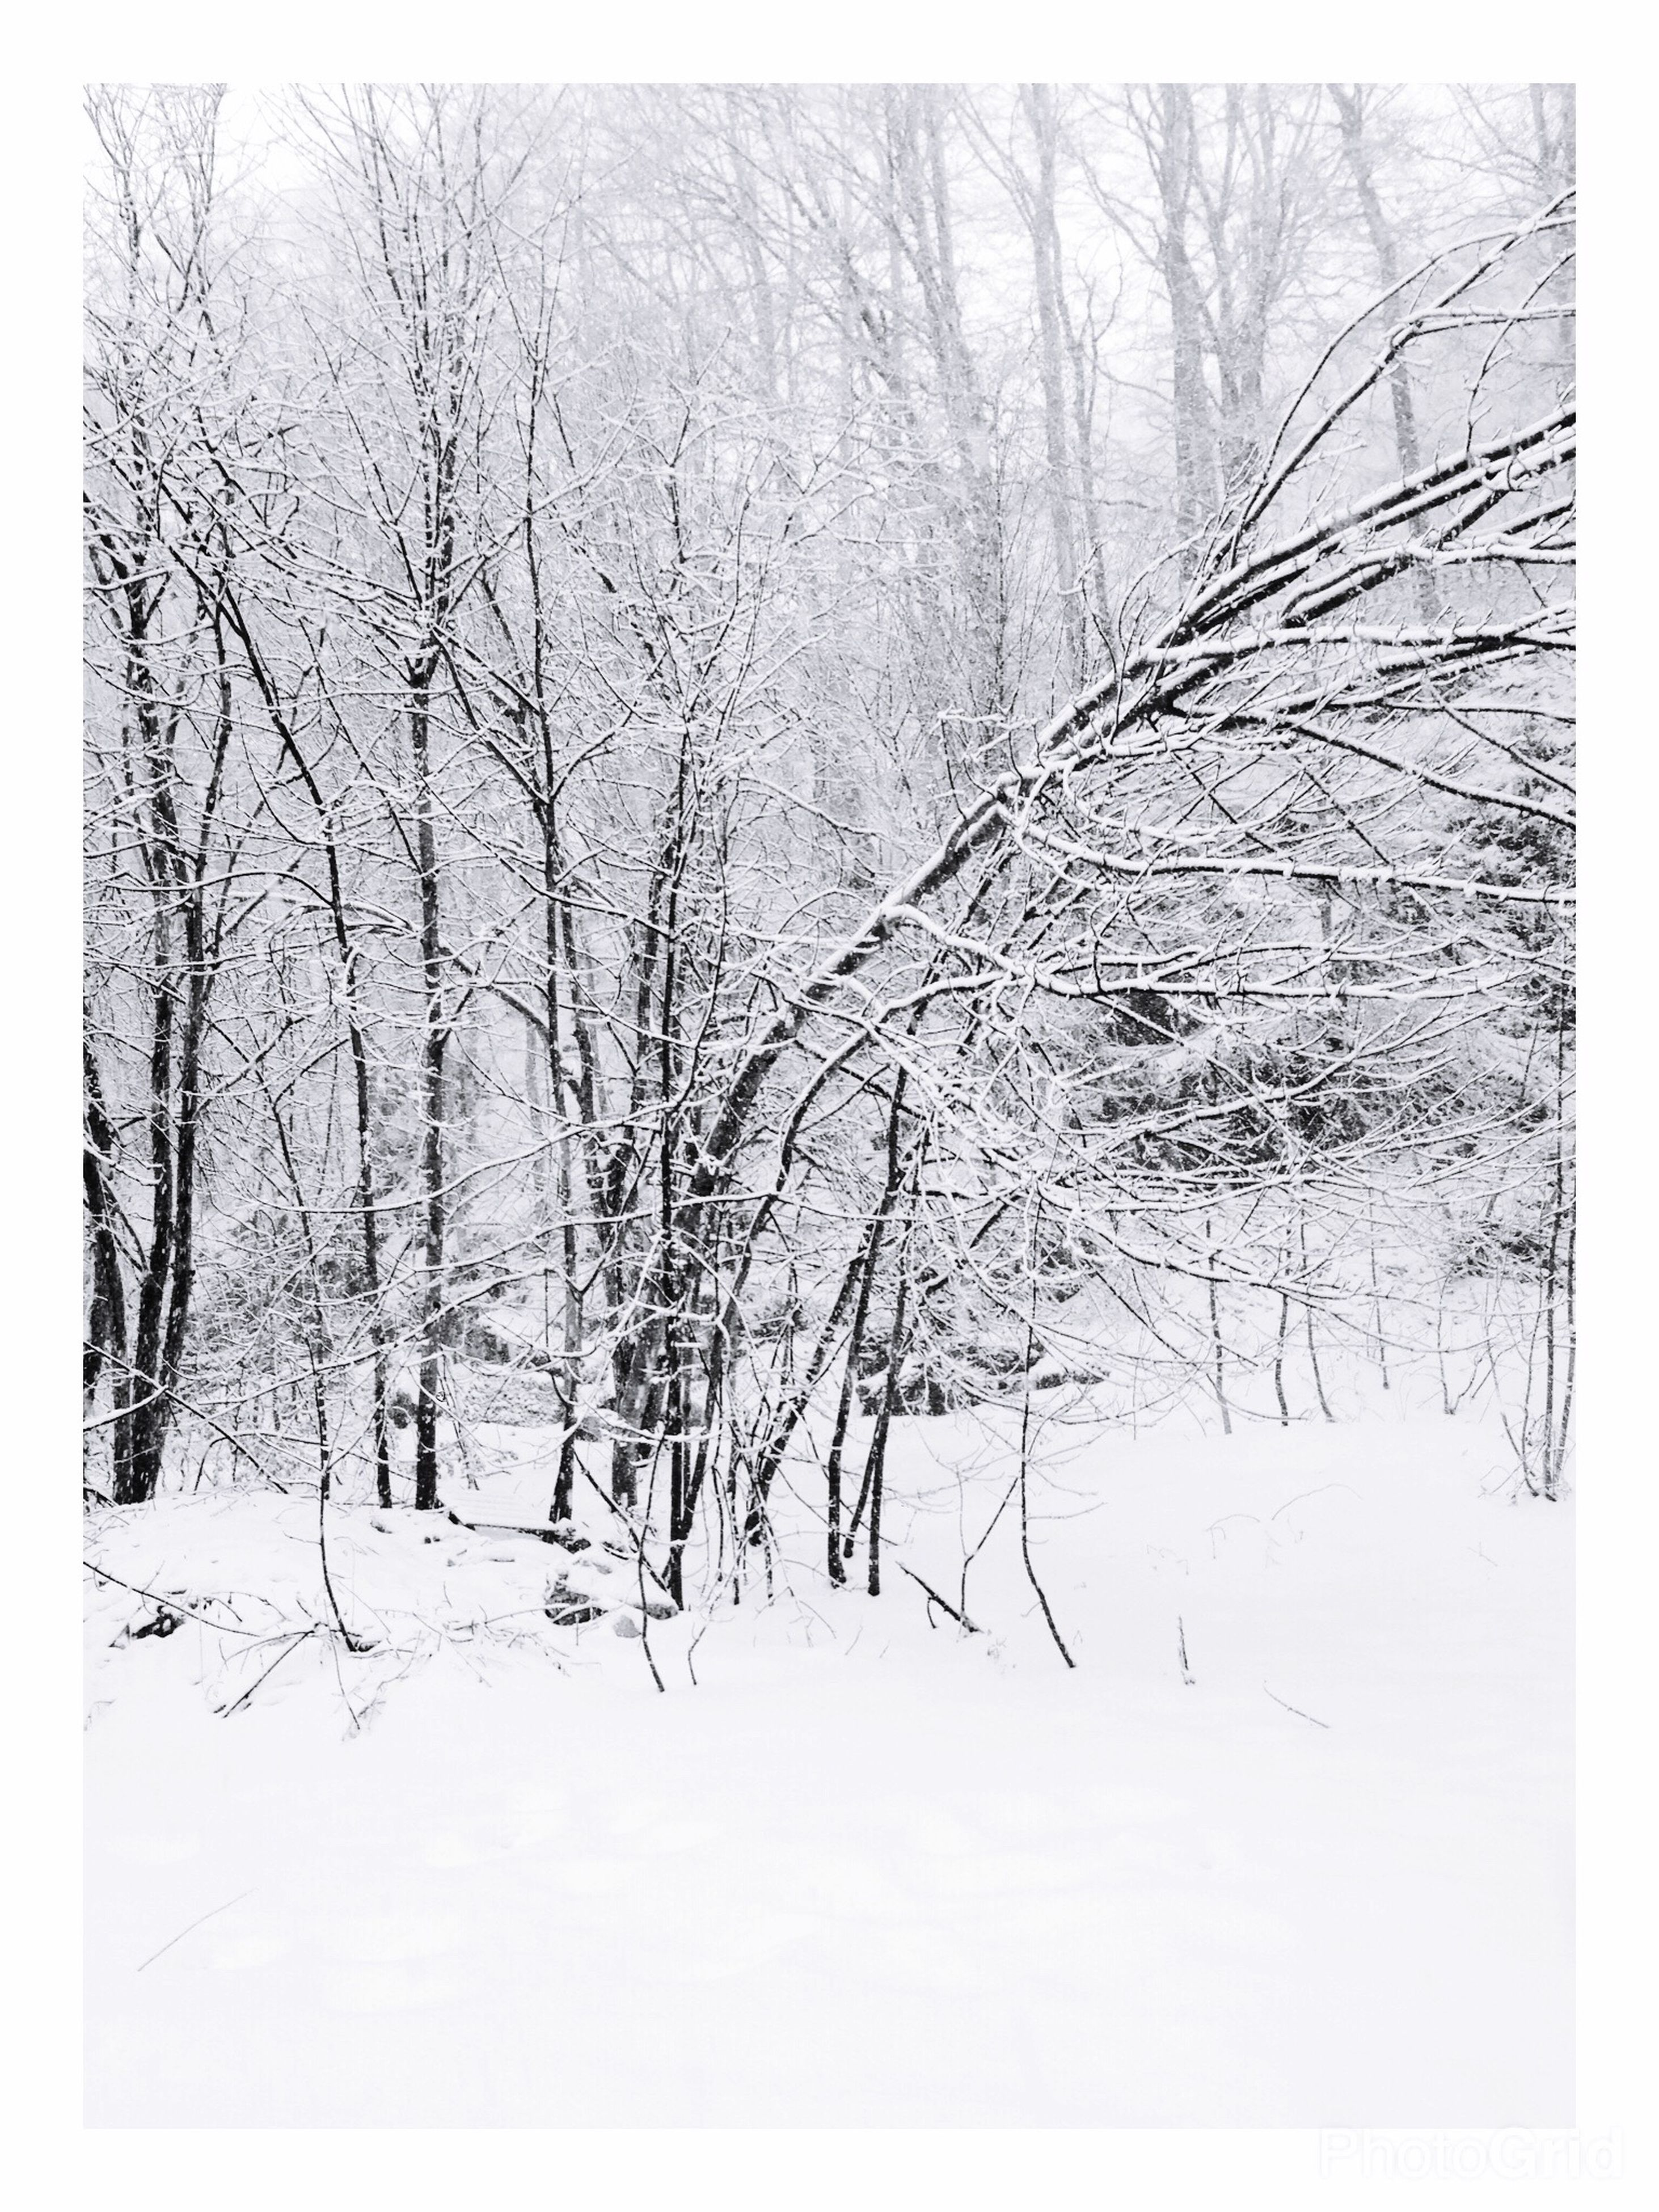 no people, nature, tree, outdoors, day, growth, close-up, snowing, sky